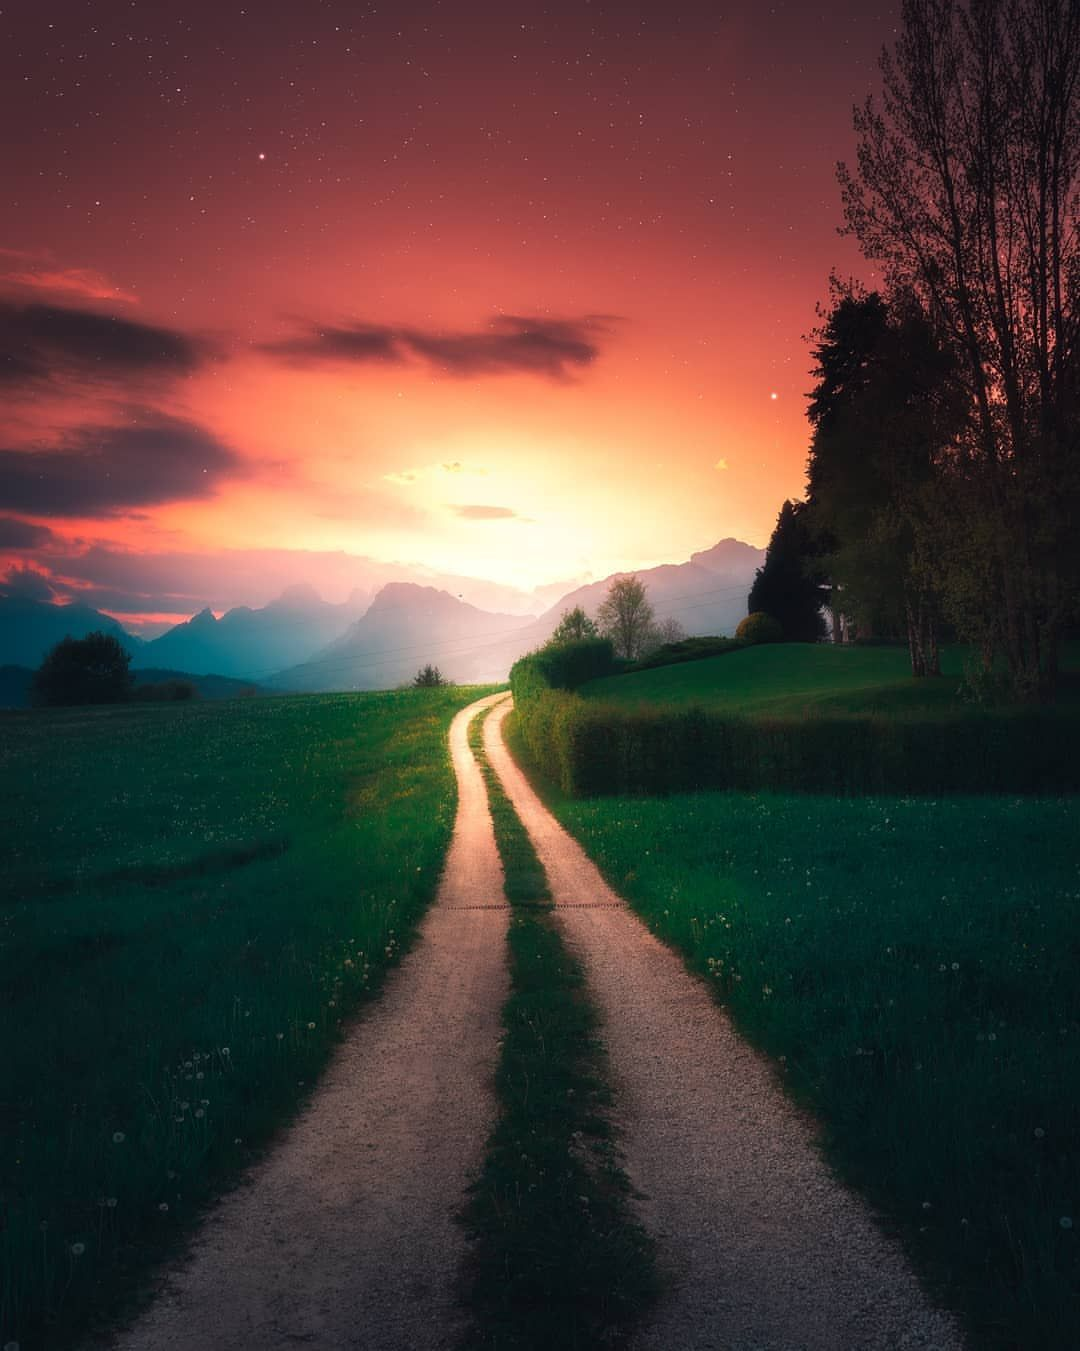 Dreamlike And Moody Landscape Photography By Zach Doehler Landscape Pictures Beautiful Photography Nature Landscape Photography